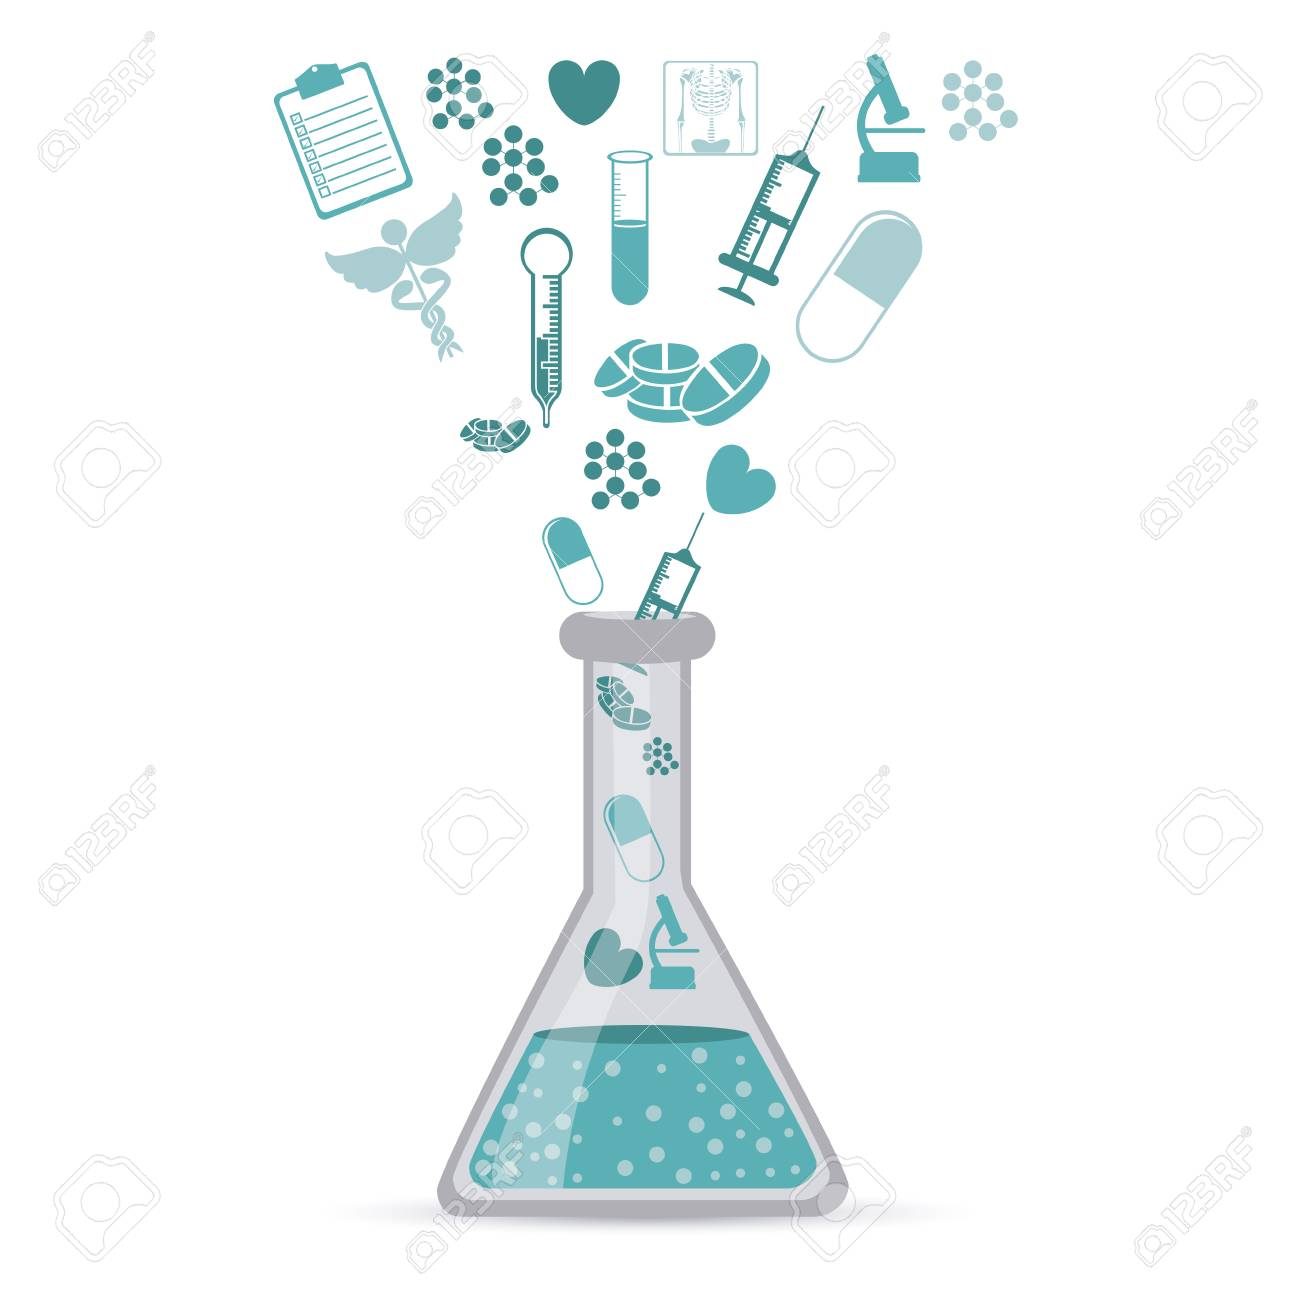 medical icons over white background vector illustration Stock Vector - 22453464